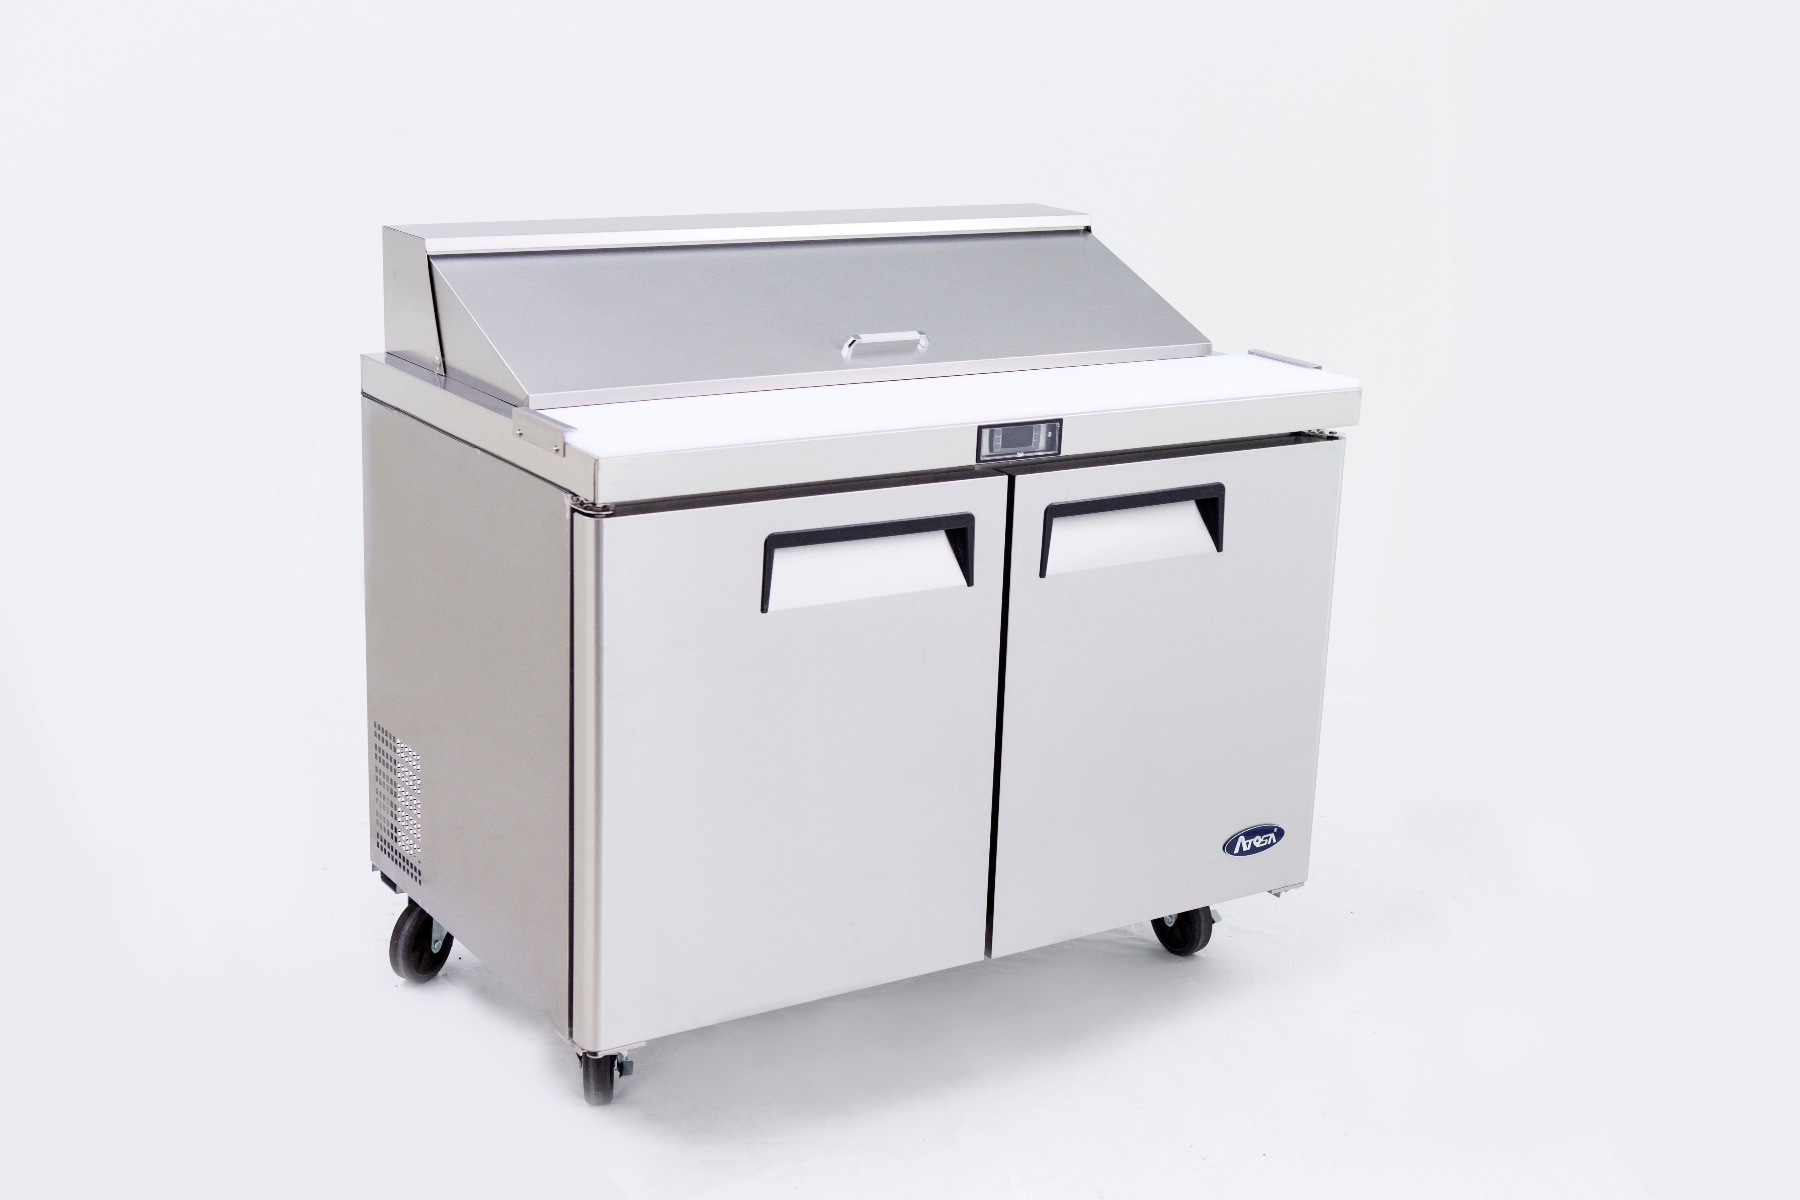 2 Door Sandwich Prep Table Refrigerator 1530 mm